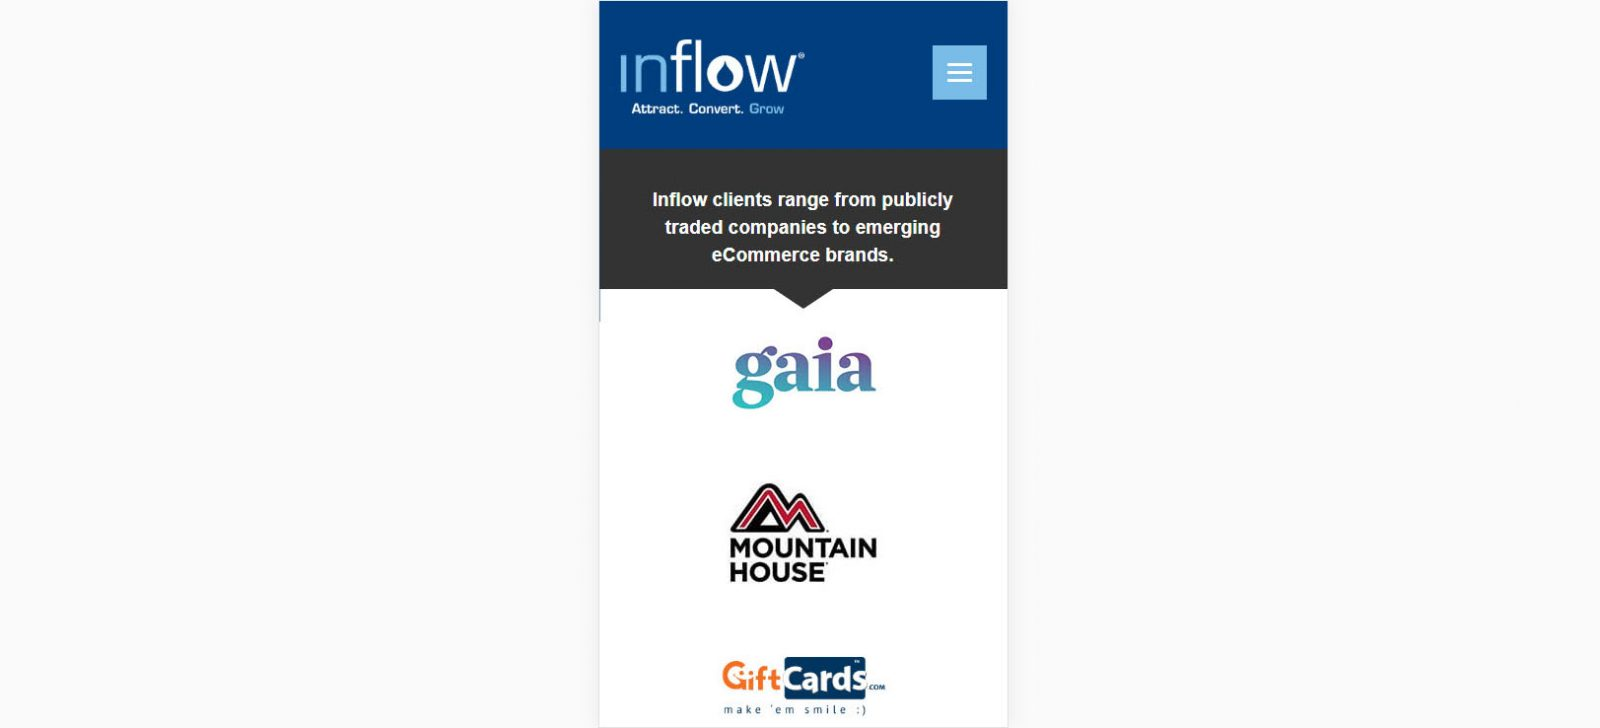 Inflow-Mobile 3